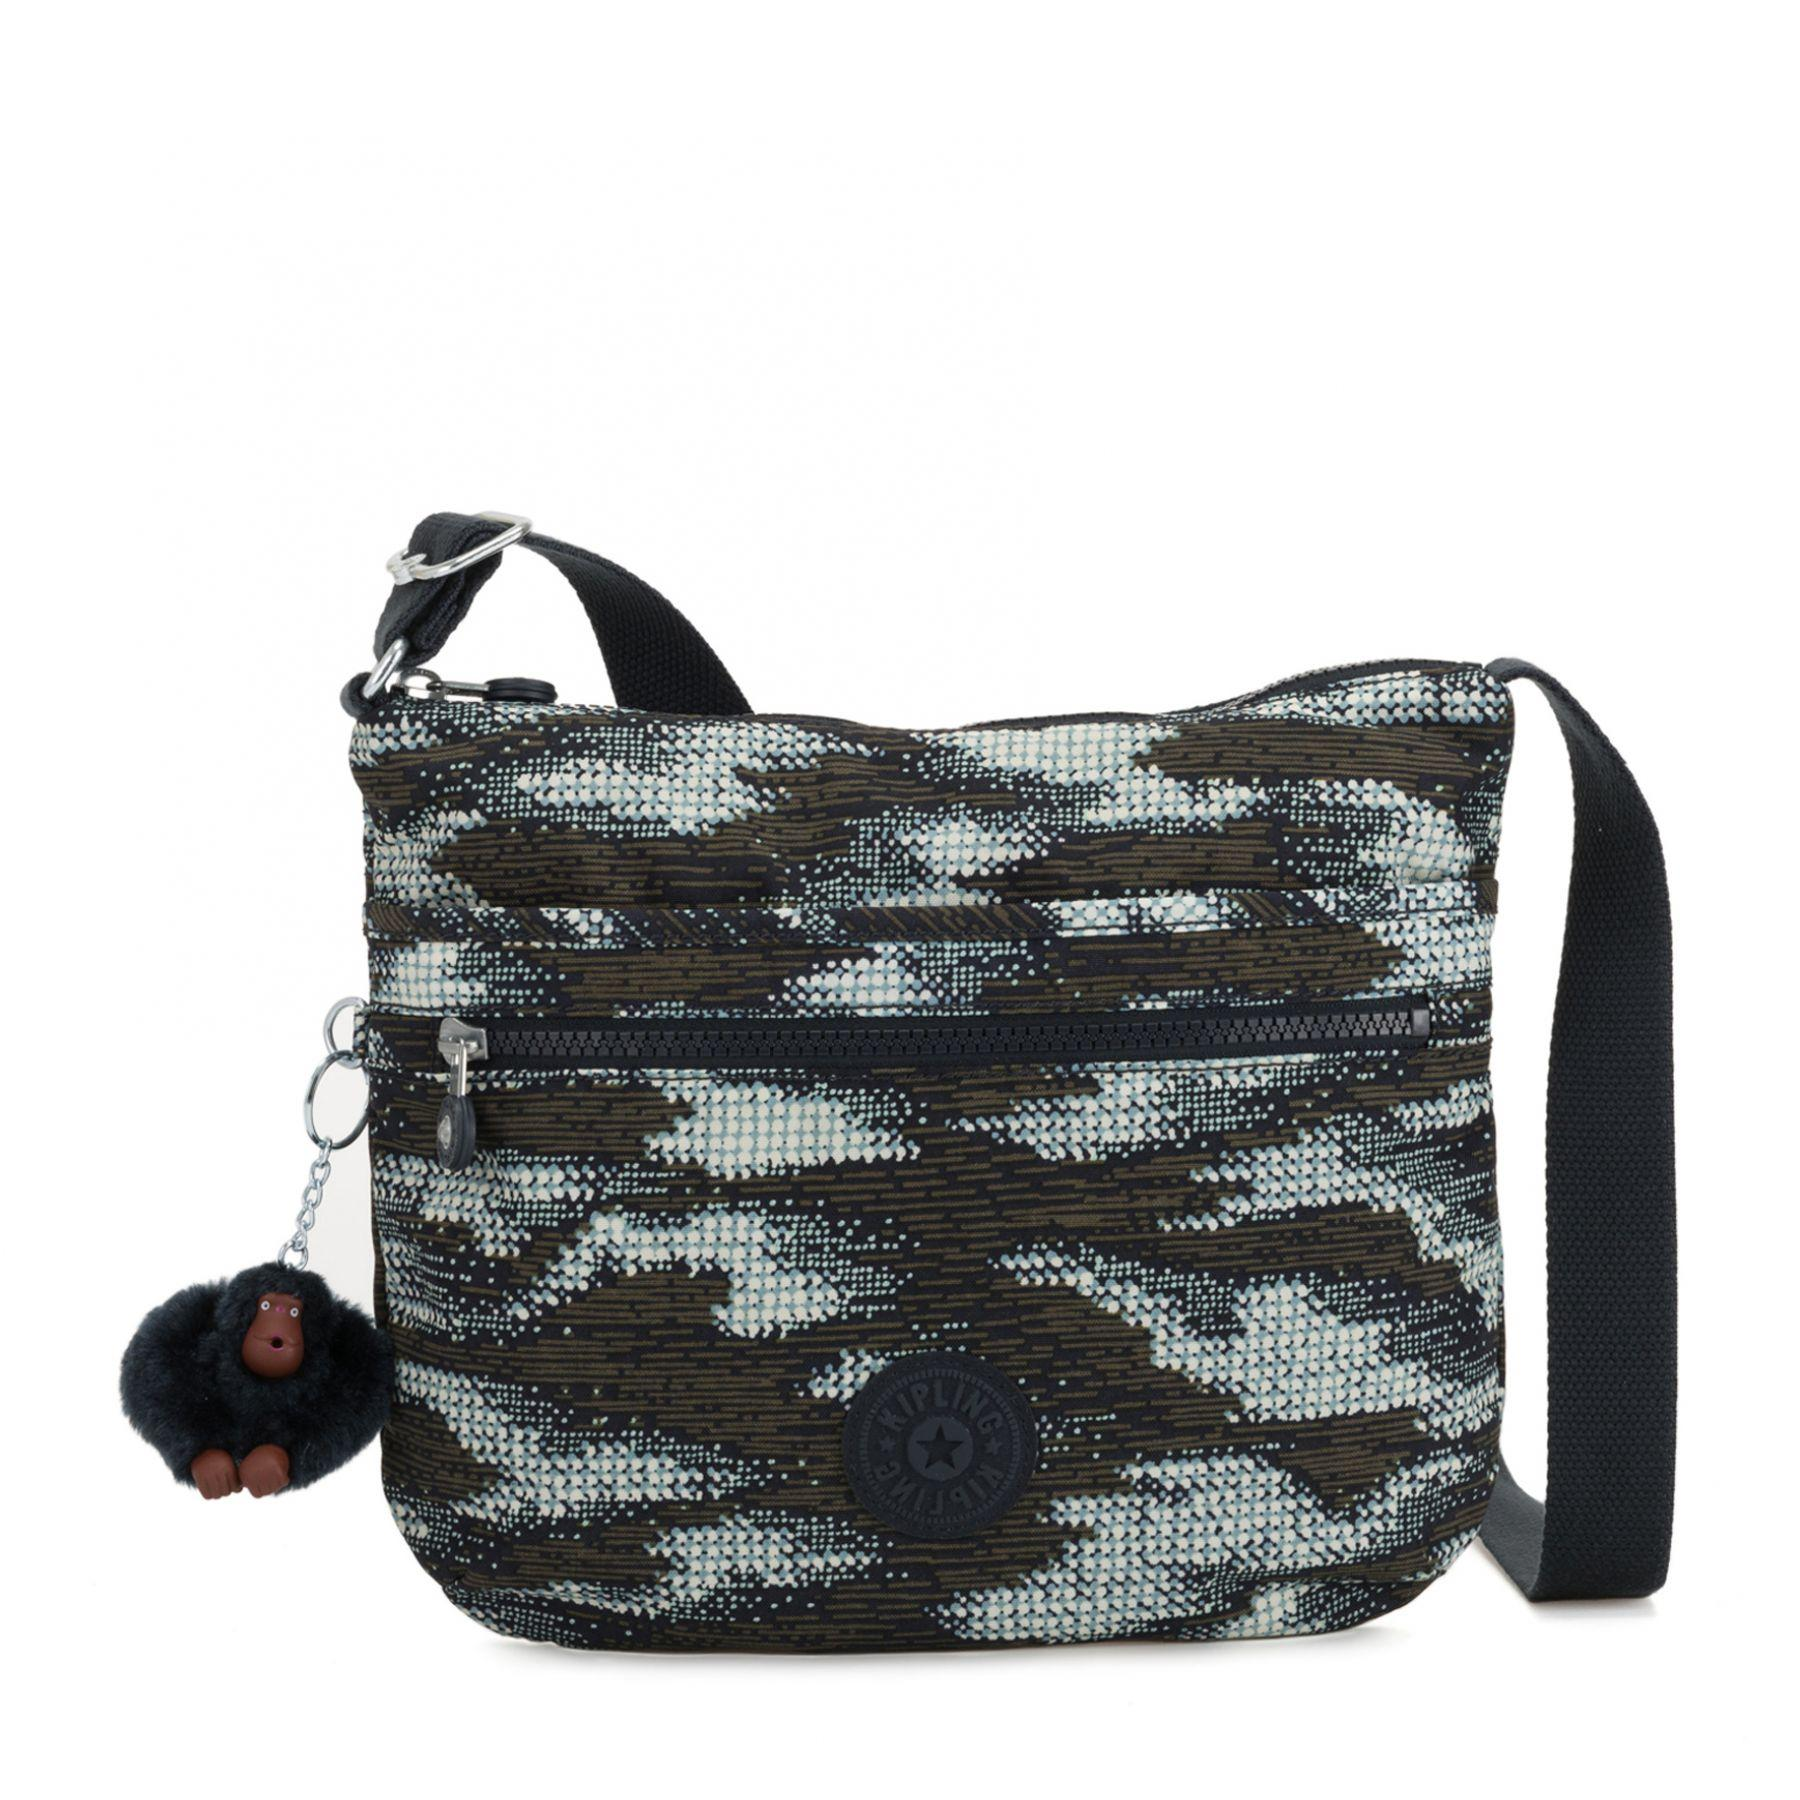 a2aa0839442 Womens Cross Body Bags for sale - Sling Bags for Women Online Deals ...